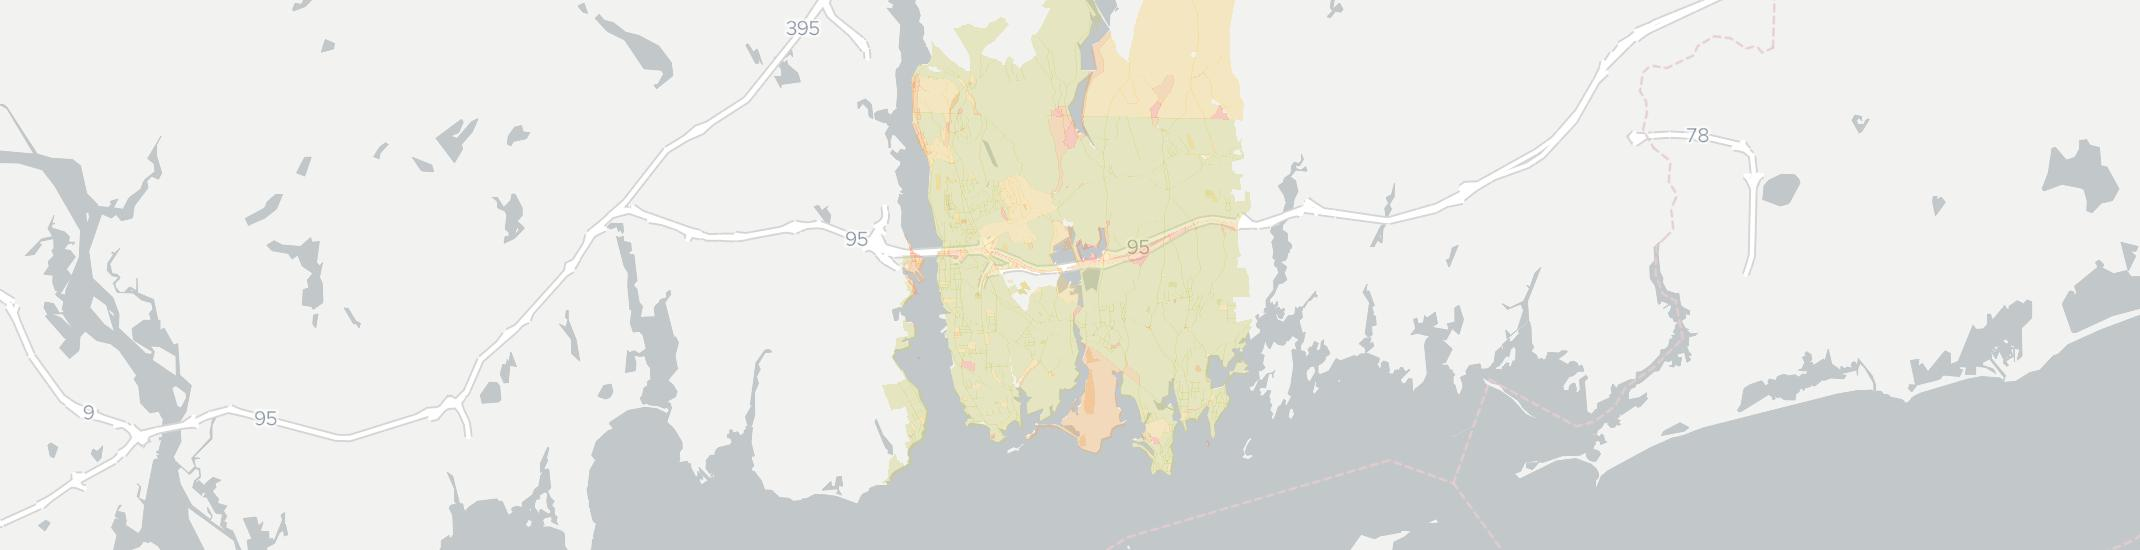 Groton Internet Competition Map. Click for interactive map.